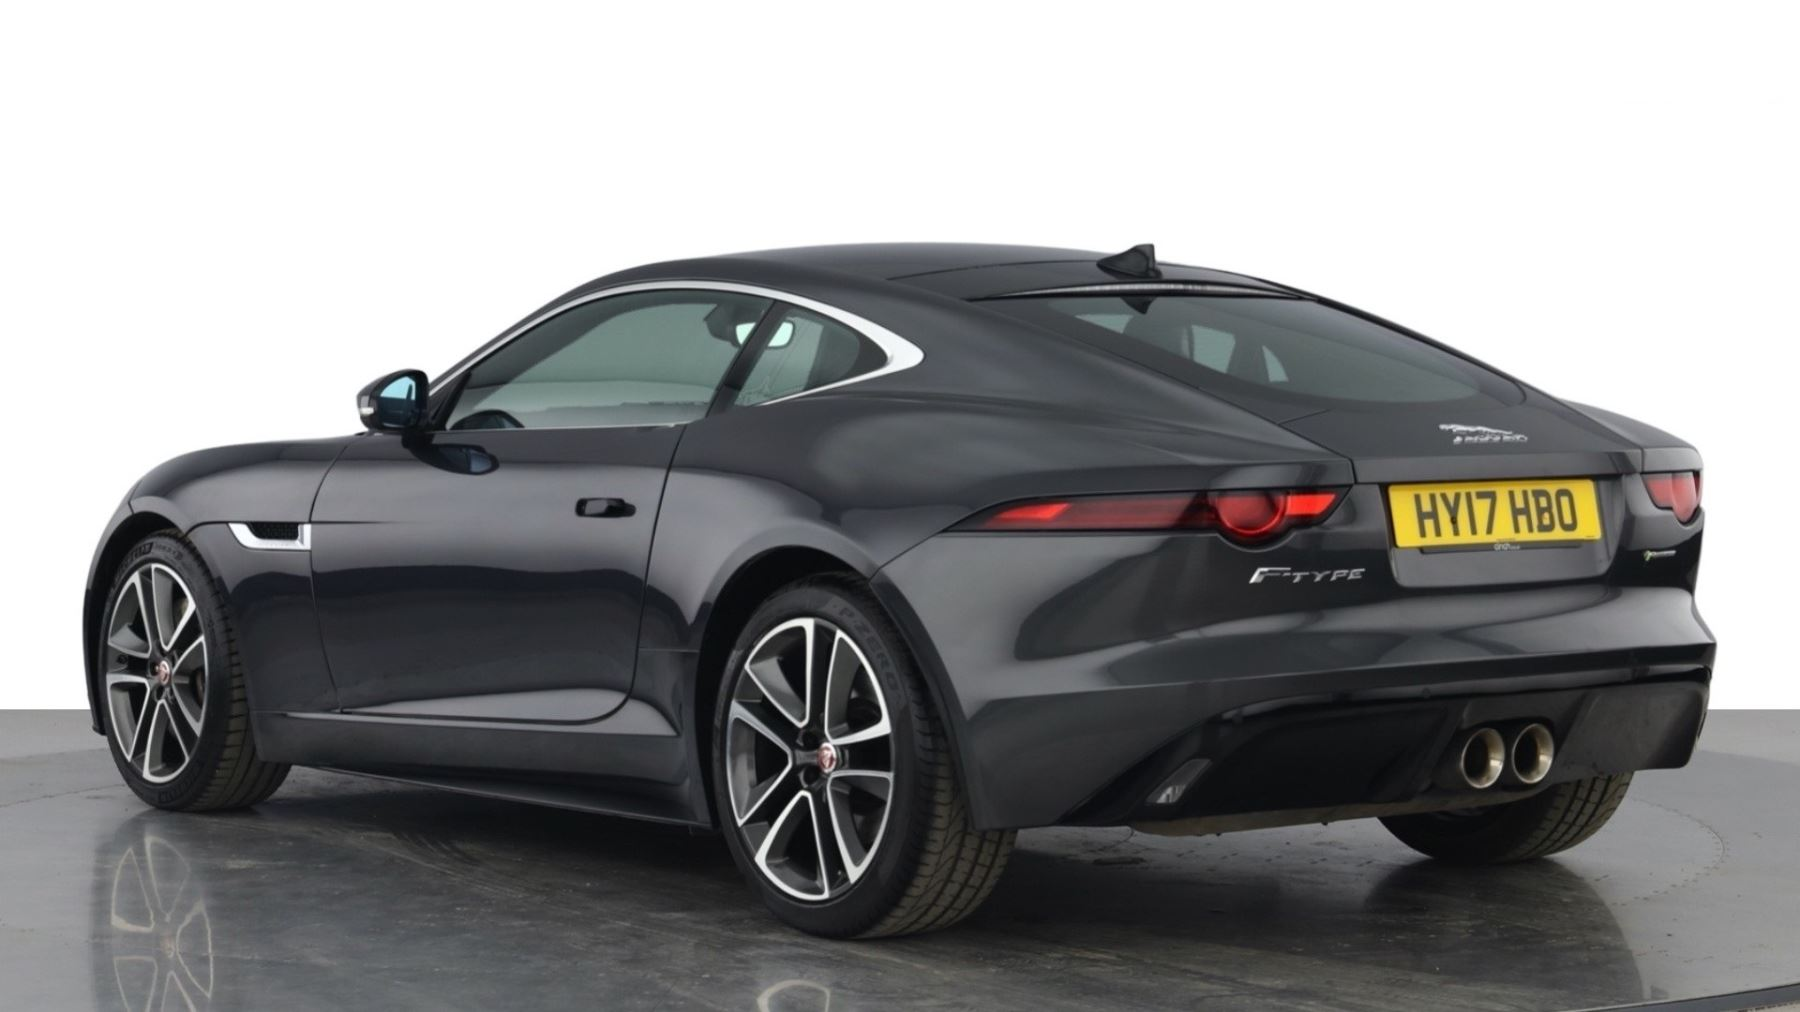 Jaguar F-TYPE 3.0 Supercharged V6 R-Dynamic with Panoramic Sunroof and Meridian Surround Sound image 2